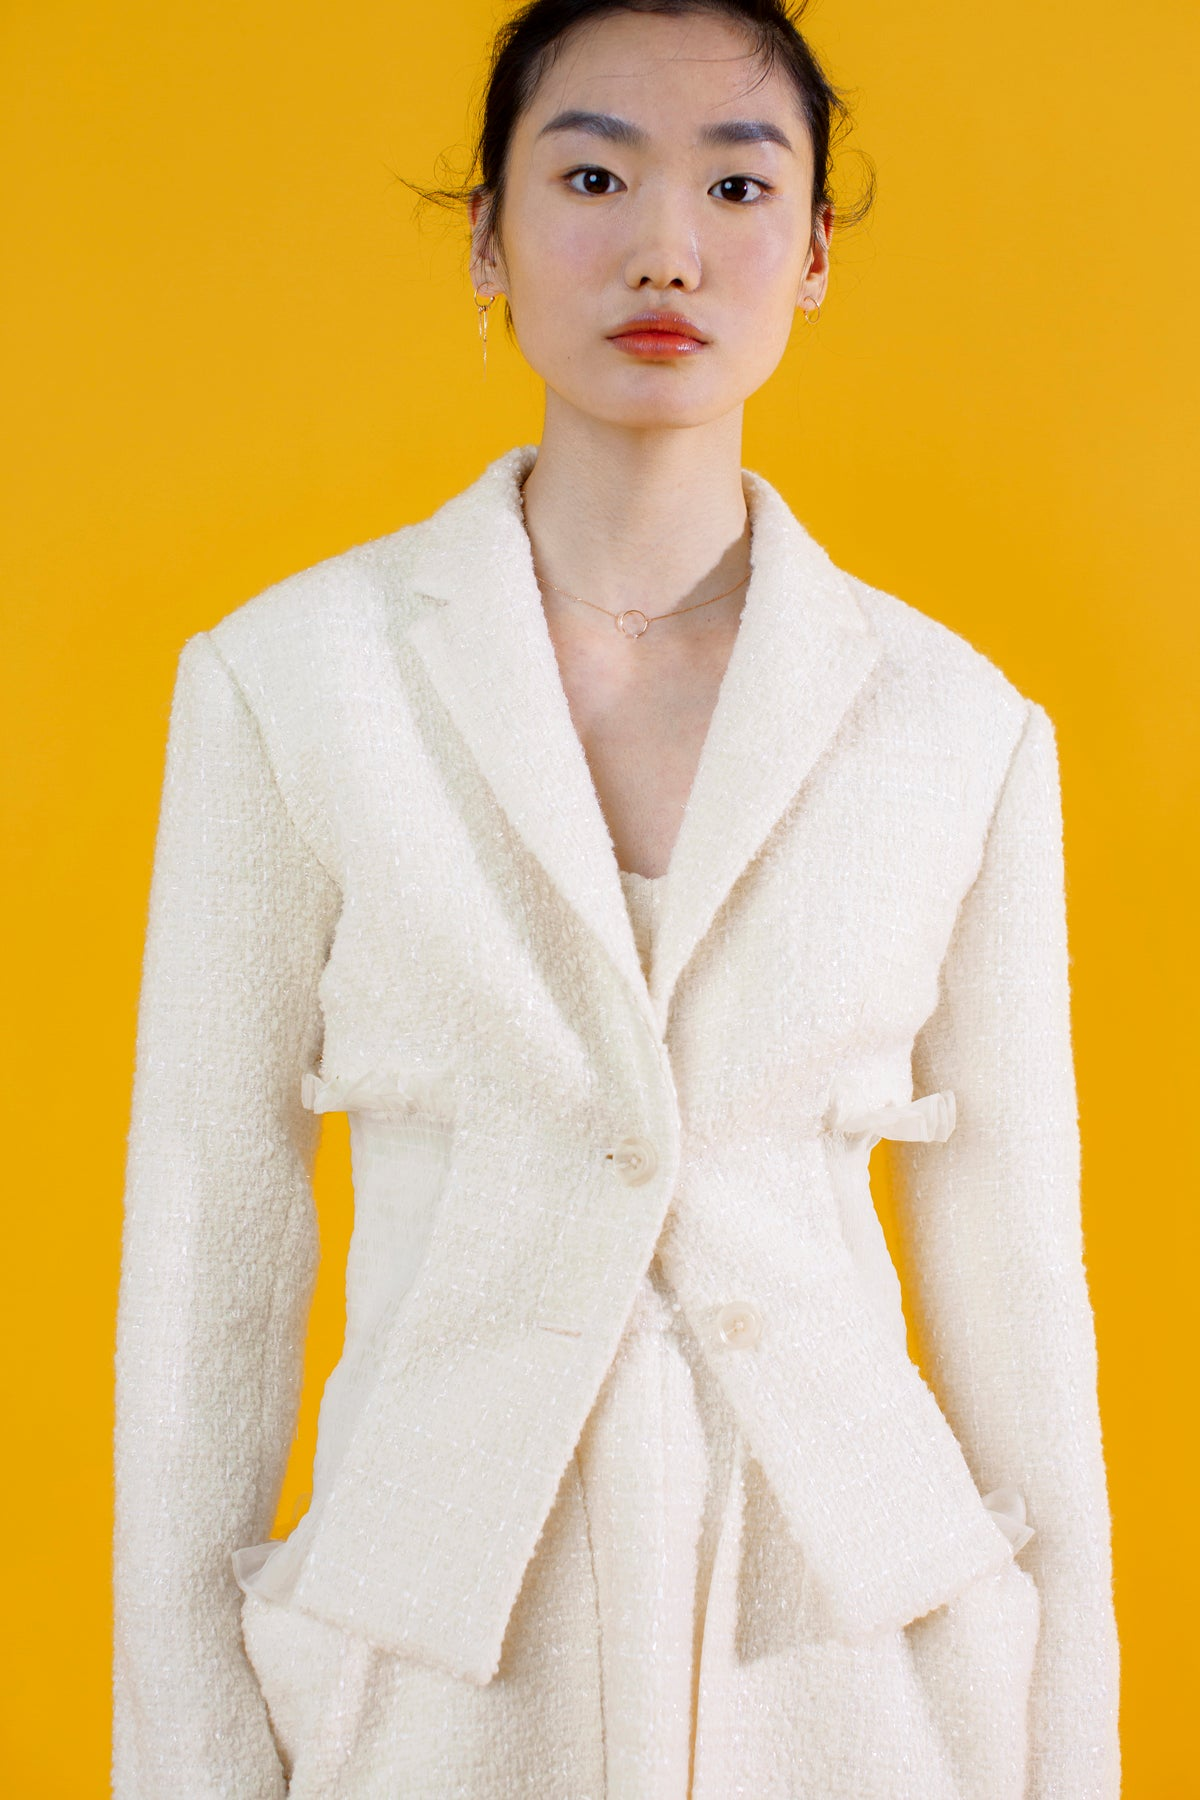 Magnolia Tweed Jacket in White